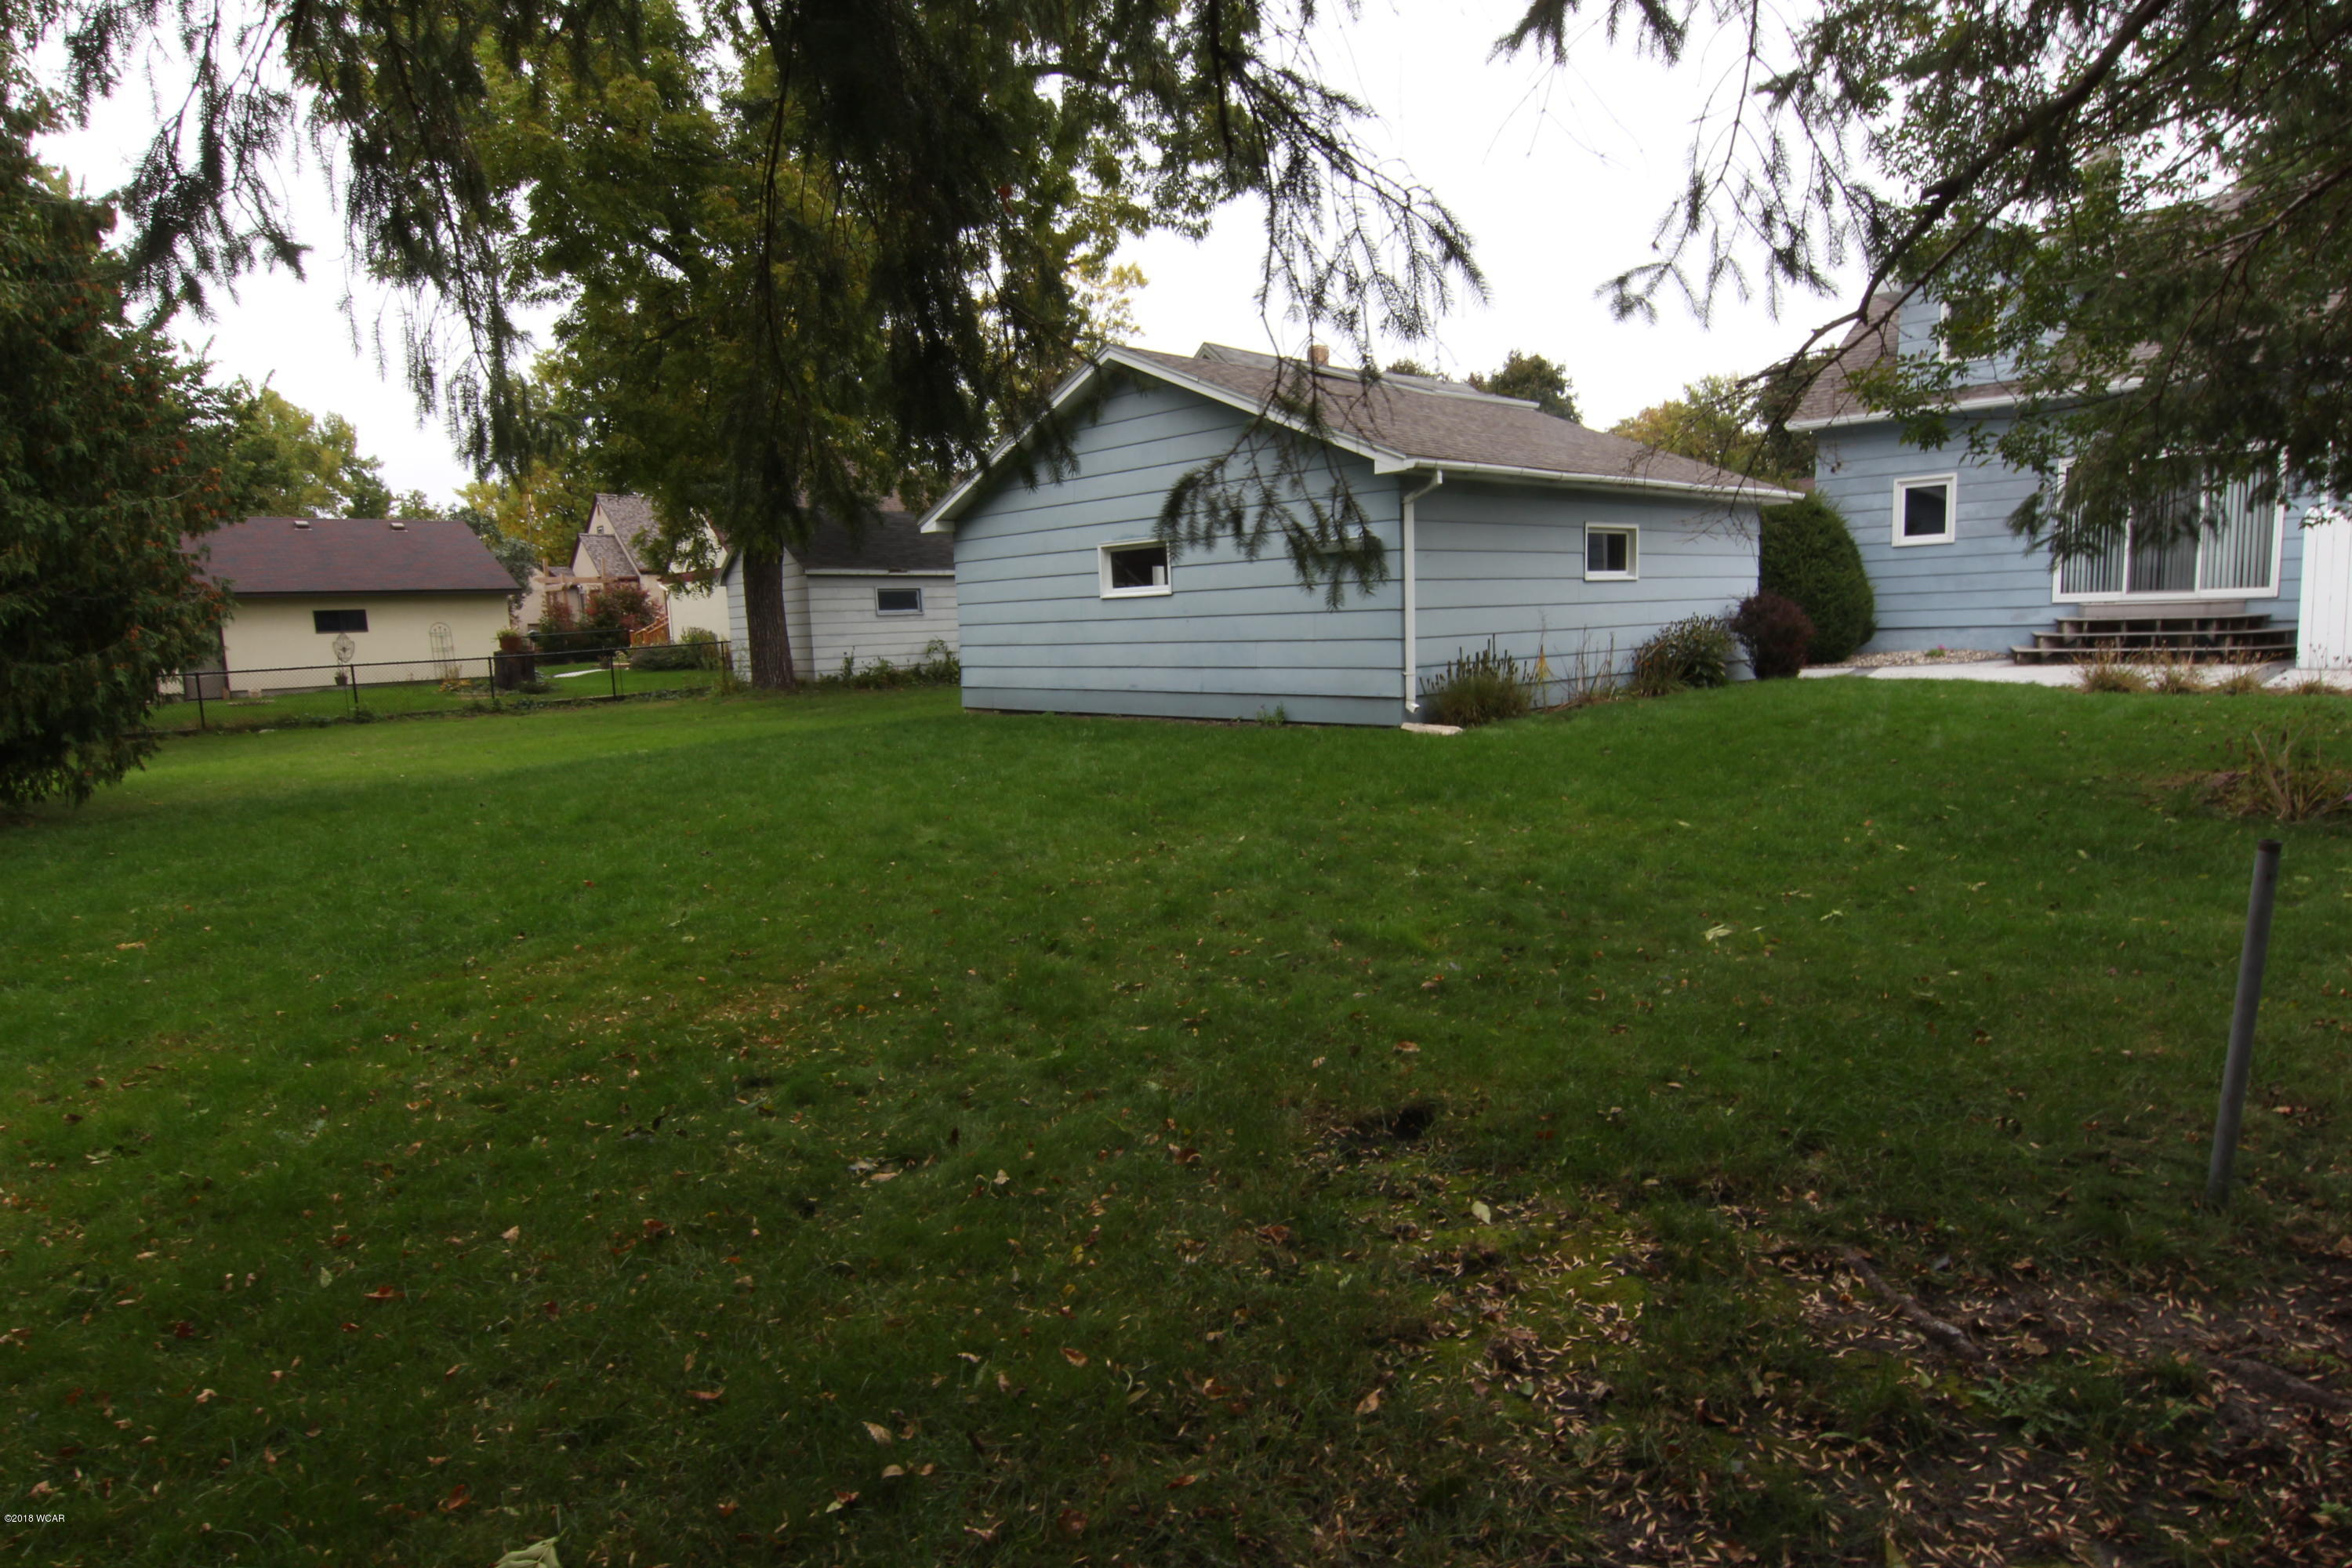 816 6th Street,Willmar,2 Bedrooms Bedrooms,1 BathroomBathrooms,Single Family,6th Street,6032502